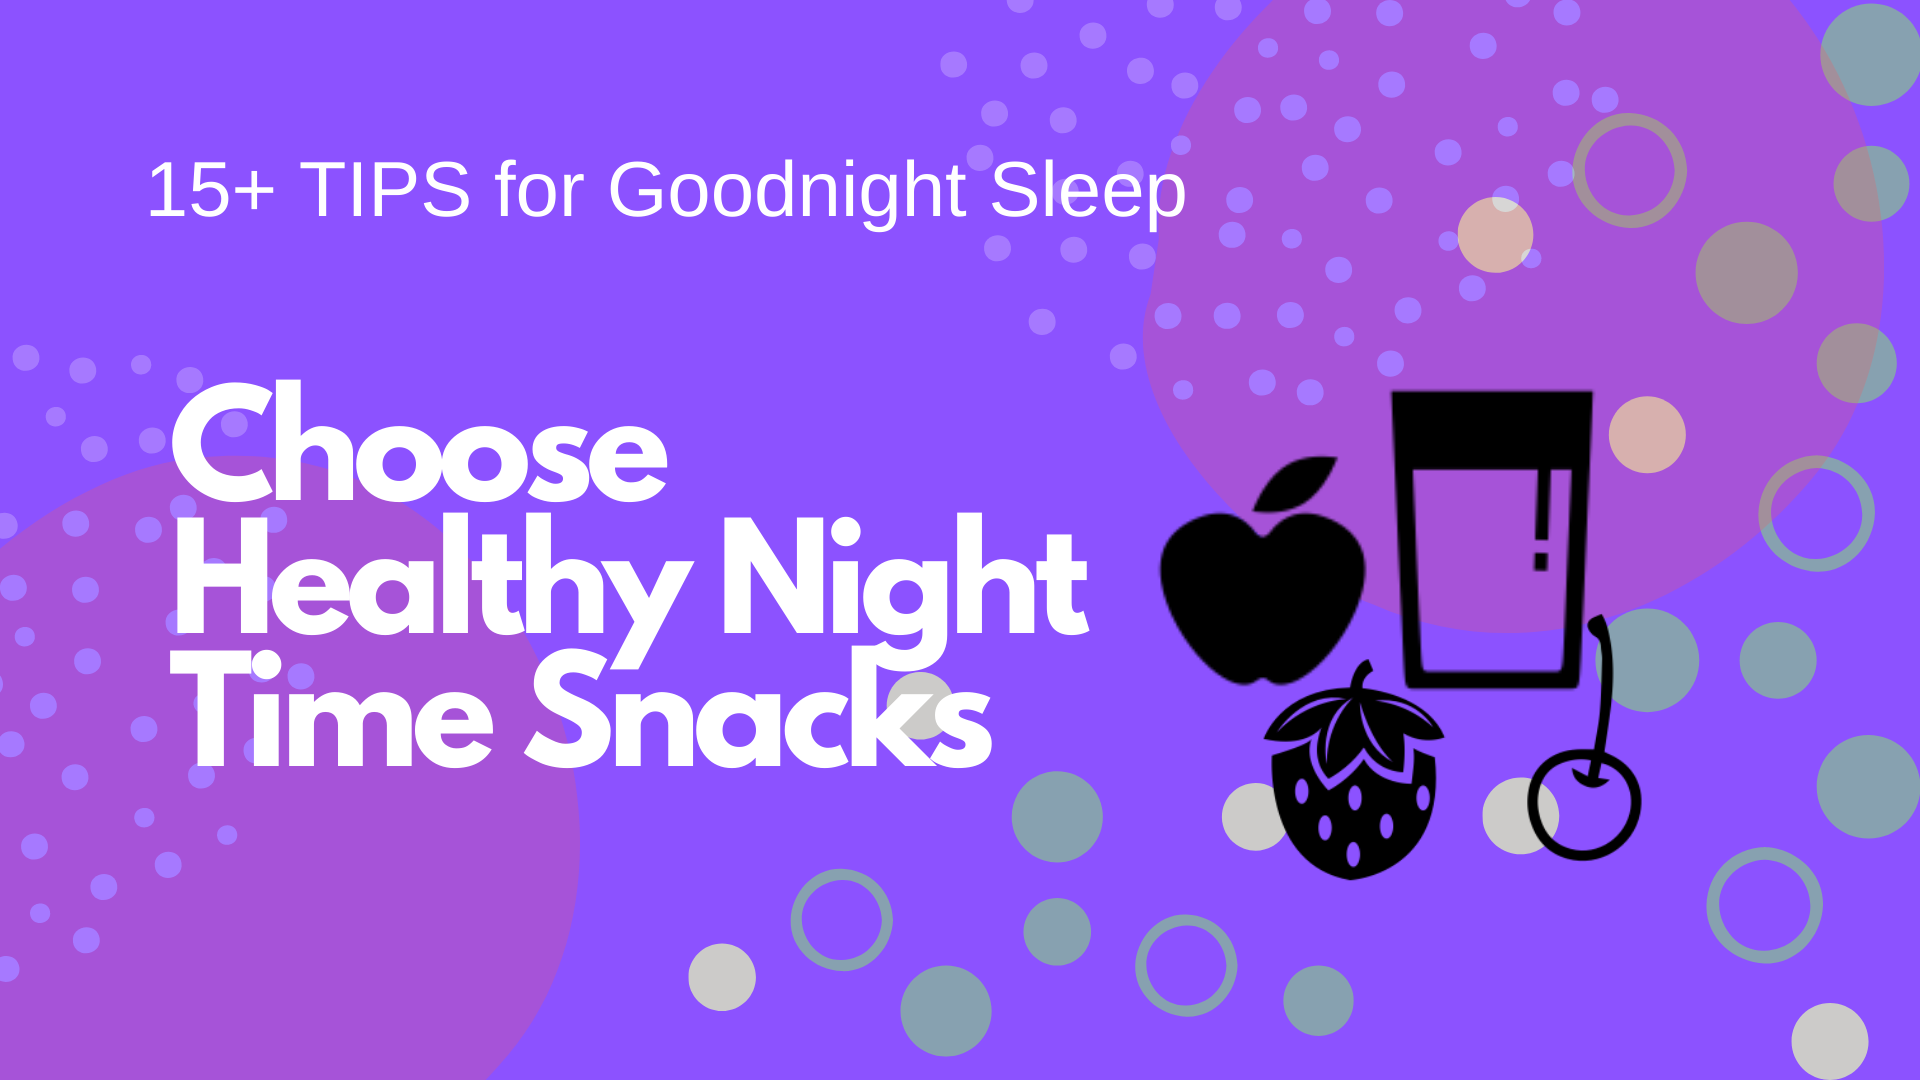 Choose Healthy Night Time Snacks